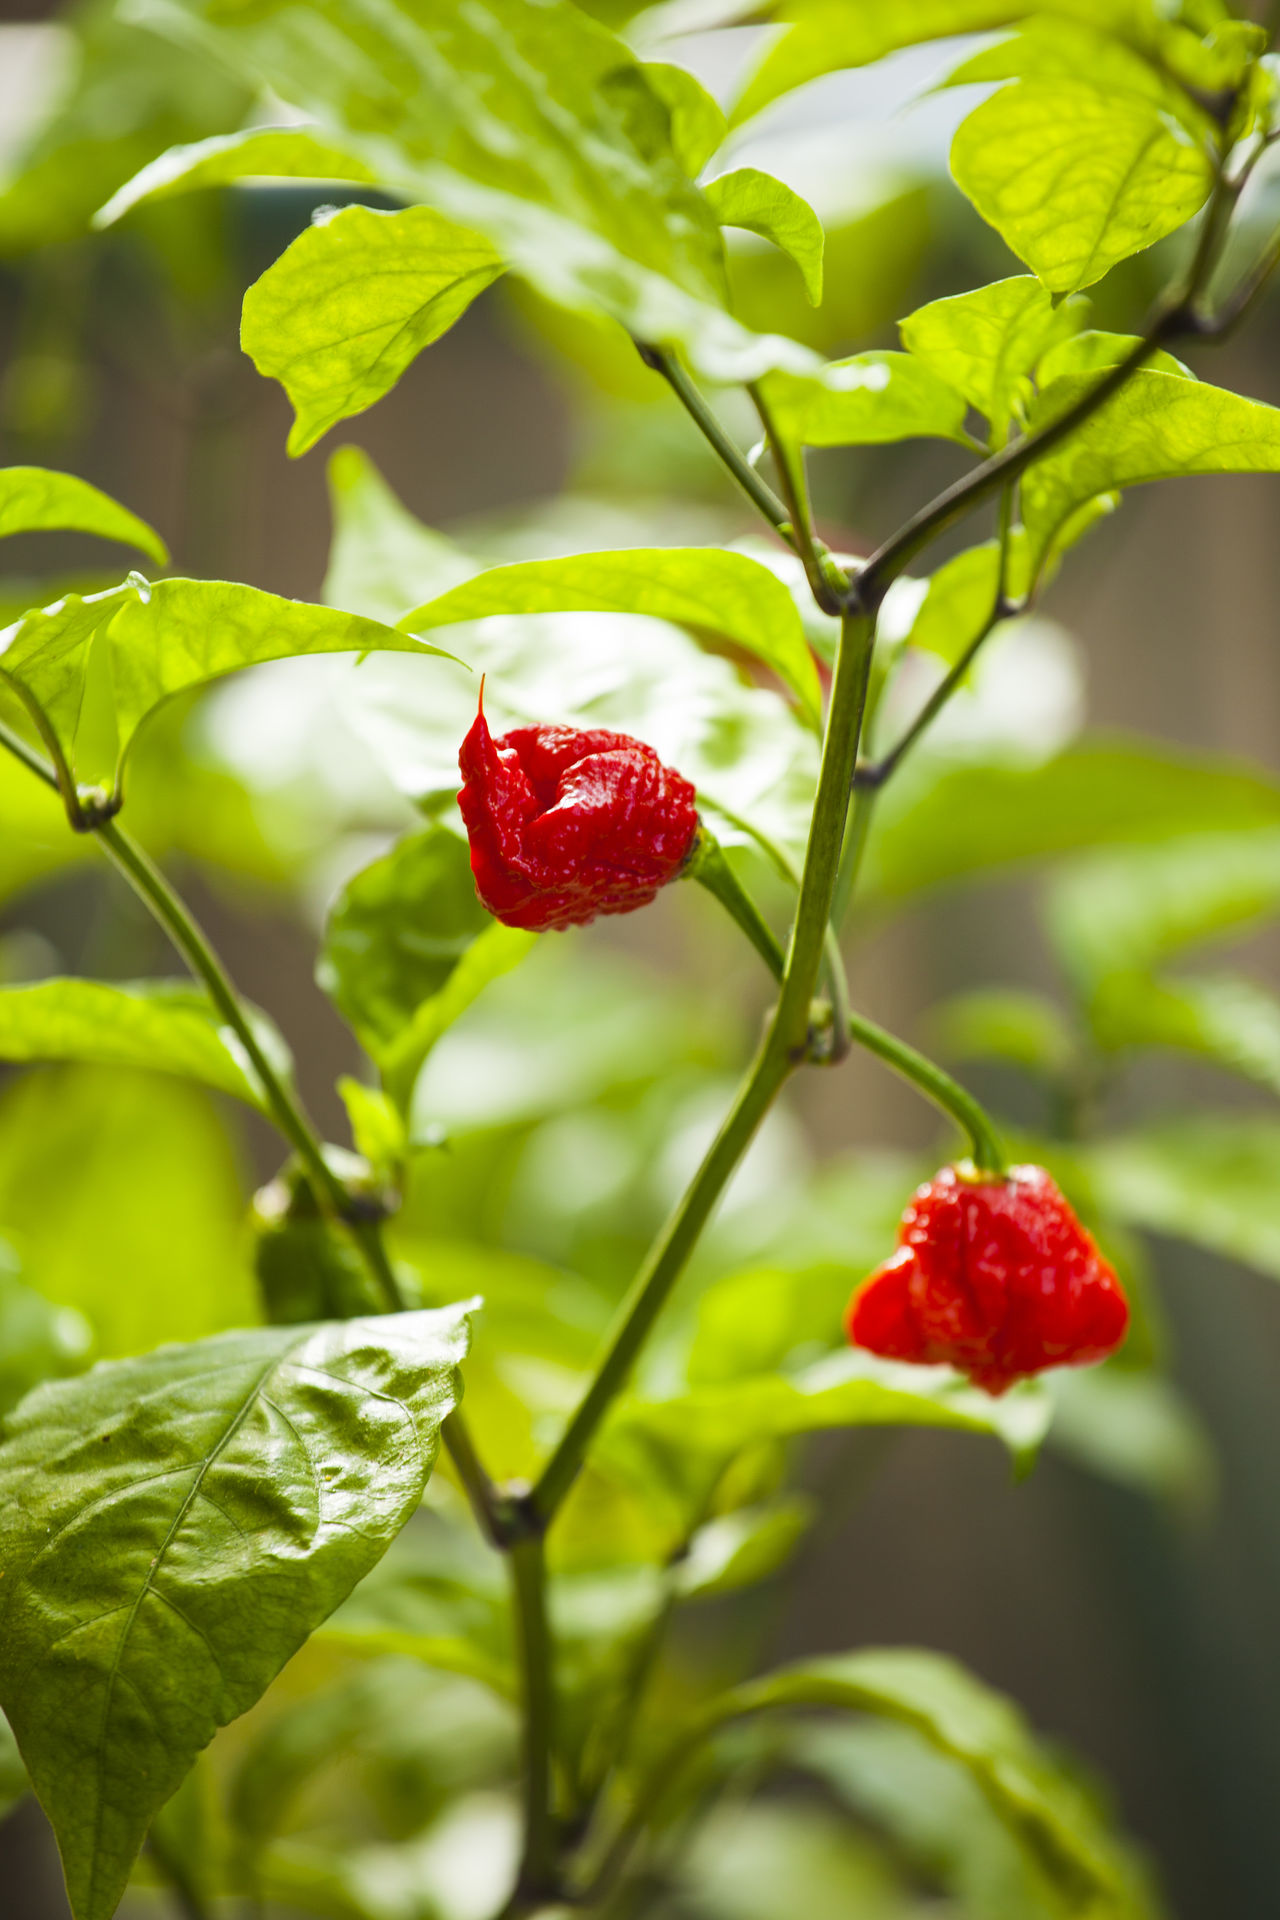 Agriculture Backgrounds Carolina Reaper Close-up Day Farm Fragility Freshness Fruit Full Frame Gourmet Growth Healthy Eating Hot Day Hot Pepper Hot Peppers Plants Leaf Nature No People Outdoors Plant Red Summer